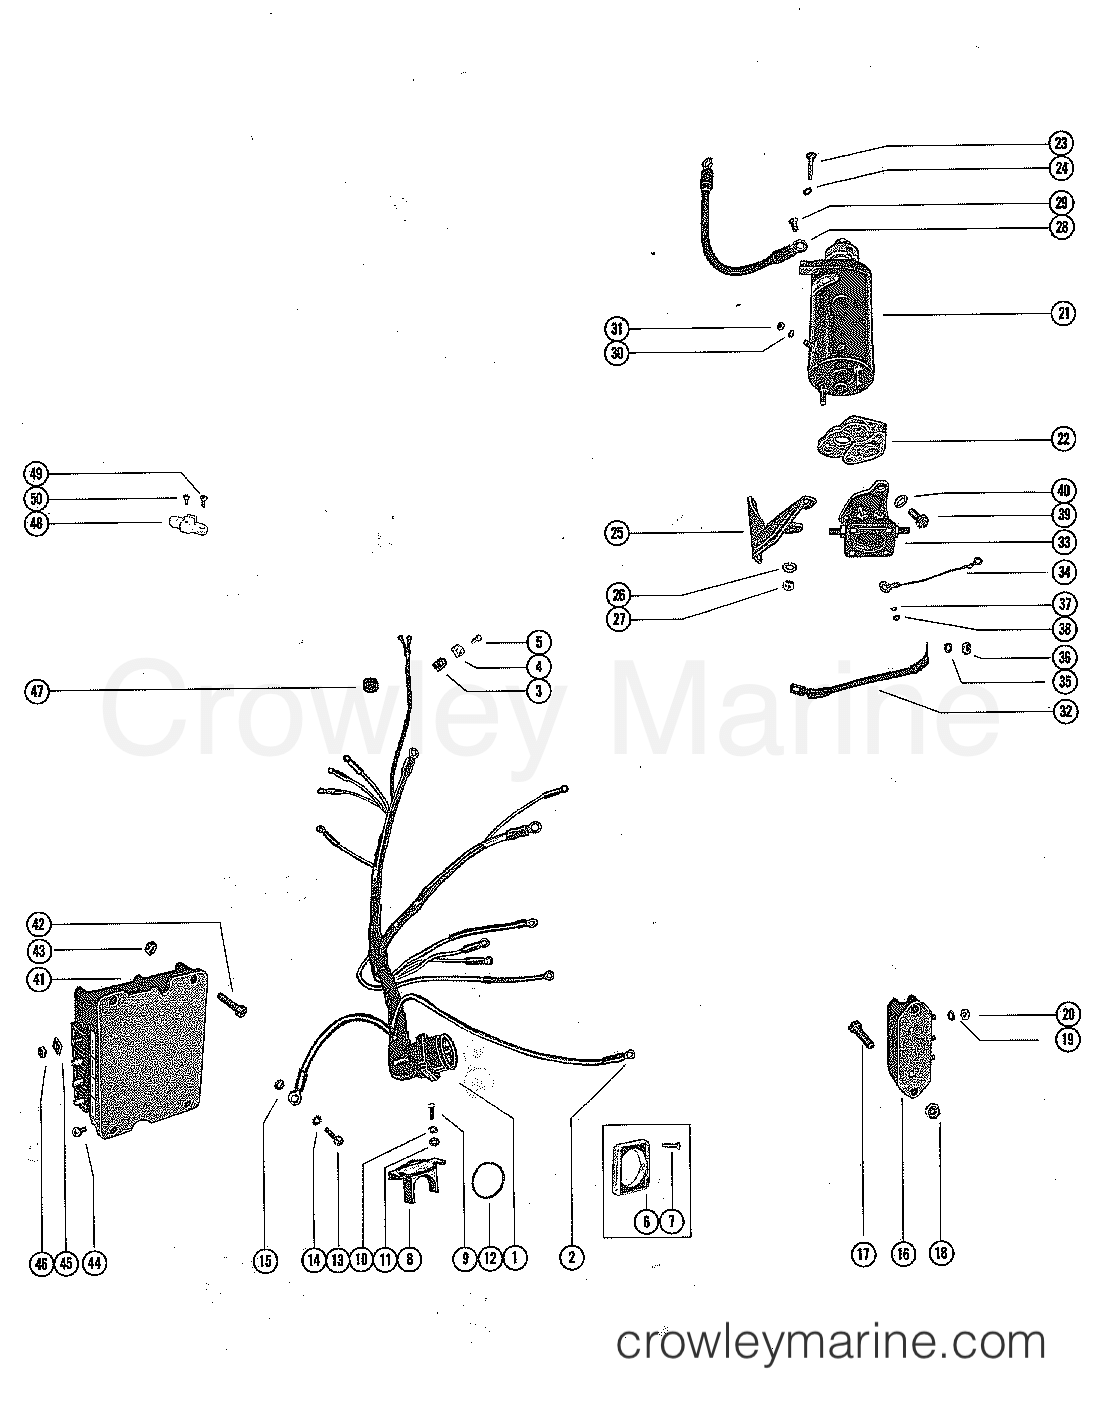 175 mercury ignition switch wiring diagram  mercury  auto wiring diagram